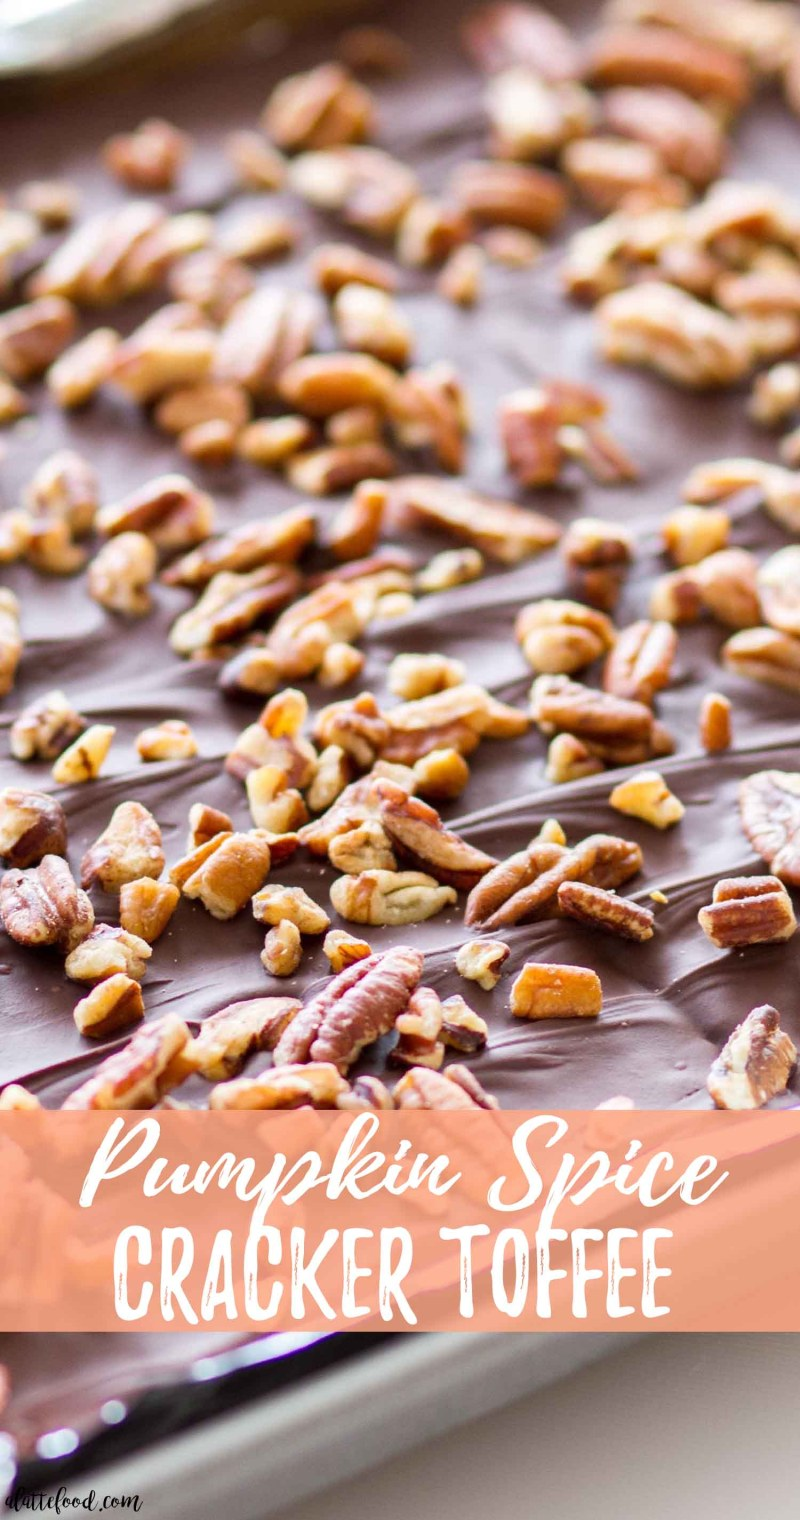 Pumpkin Spice Cracker Toffee with pecans with text